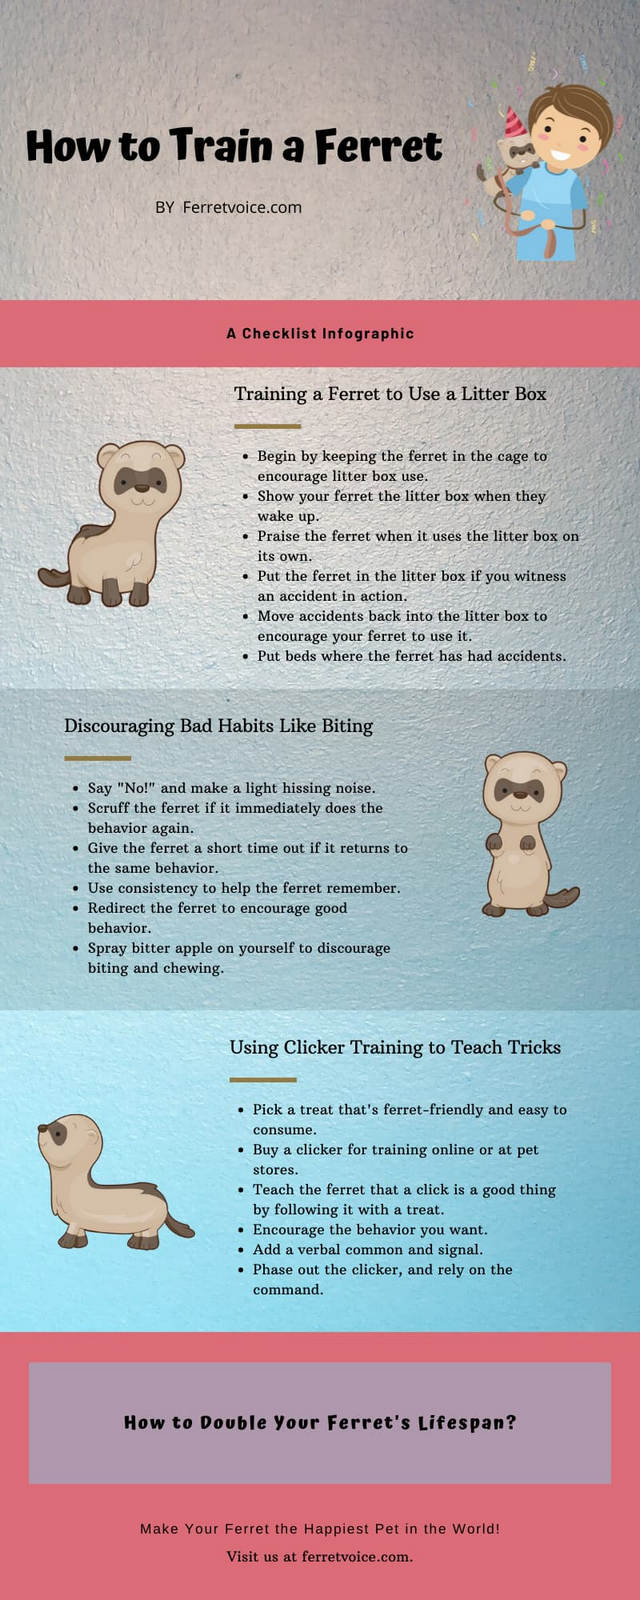 How to Train a Ferret Infographic